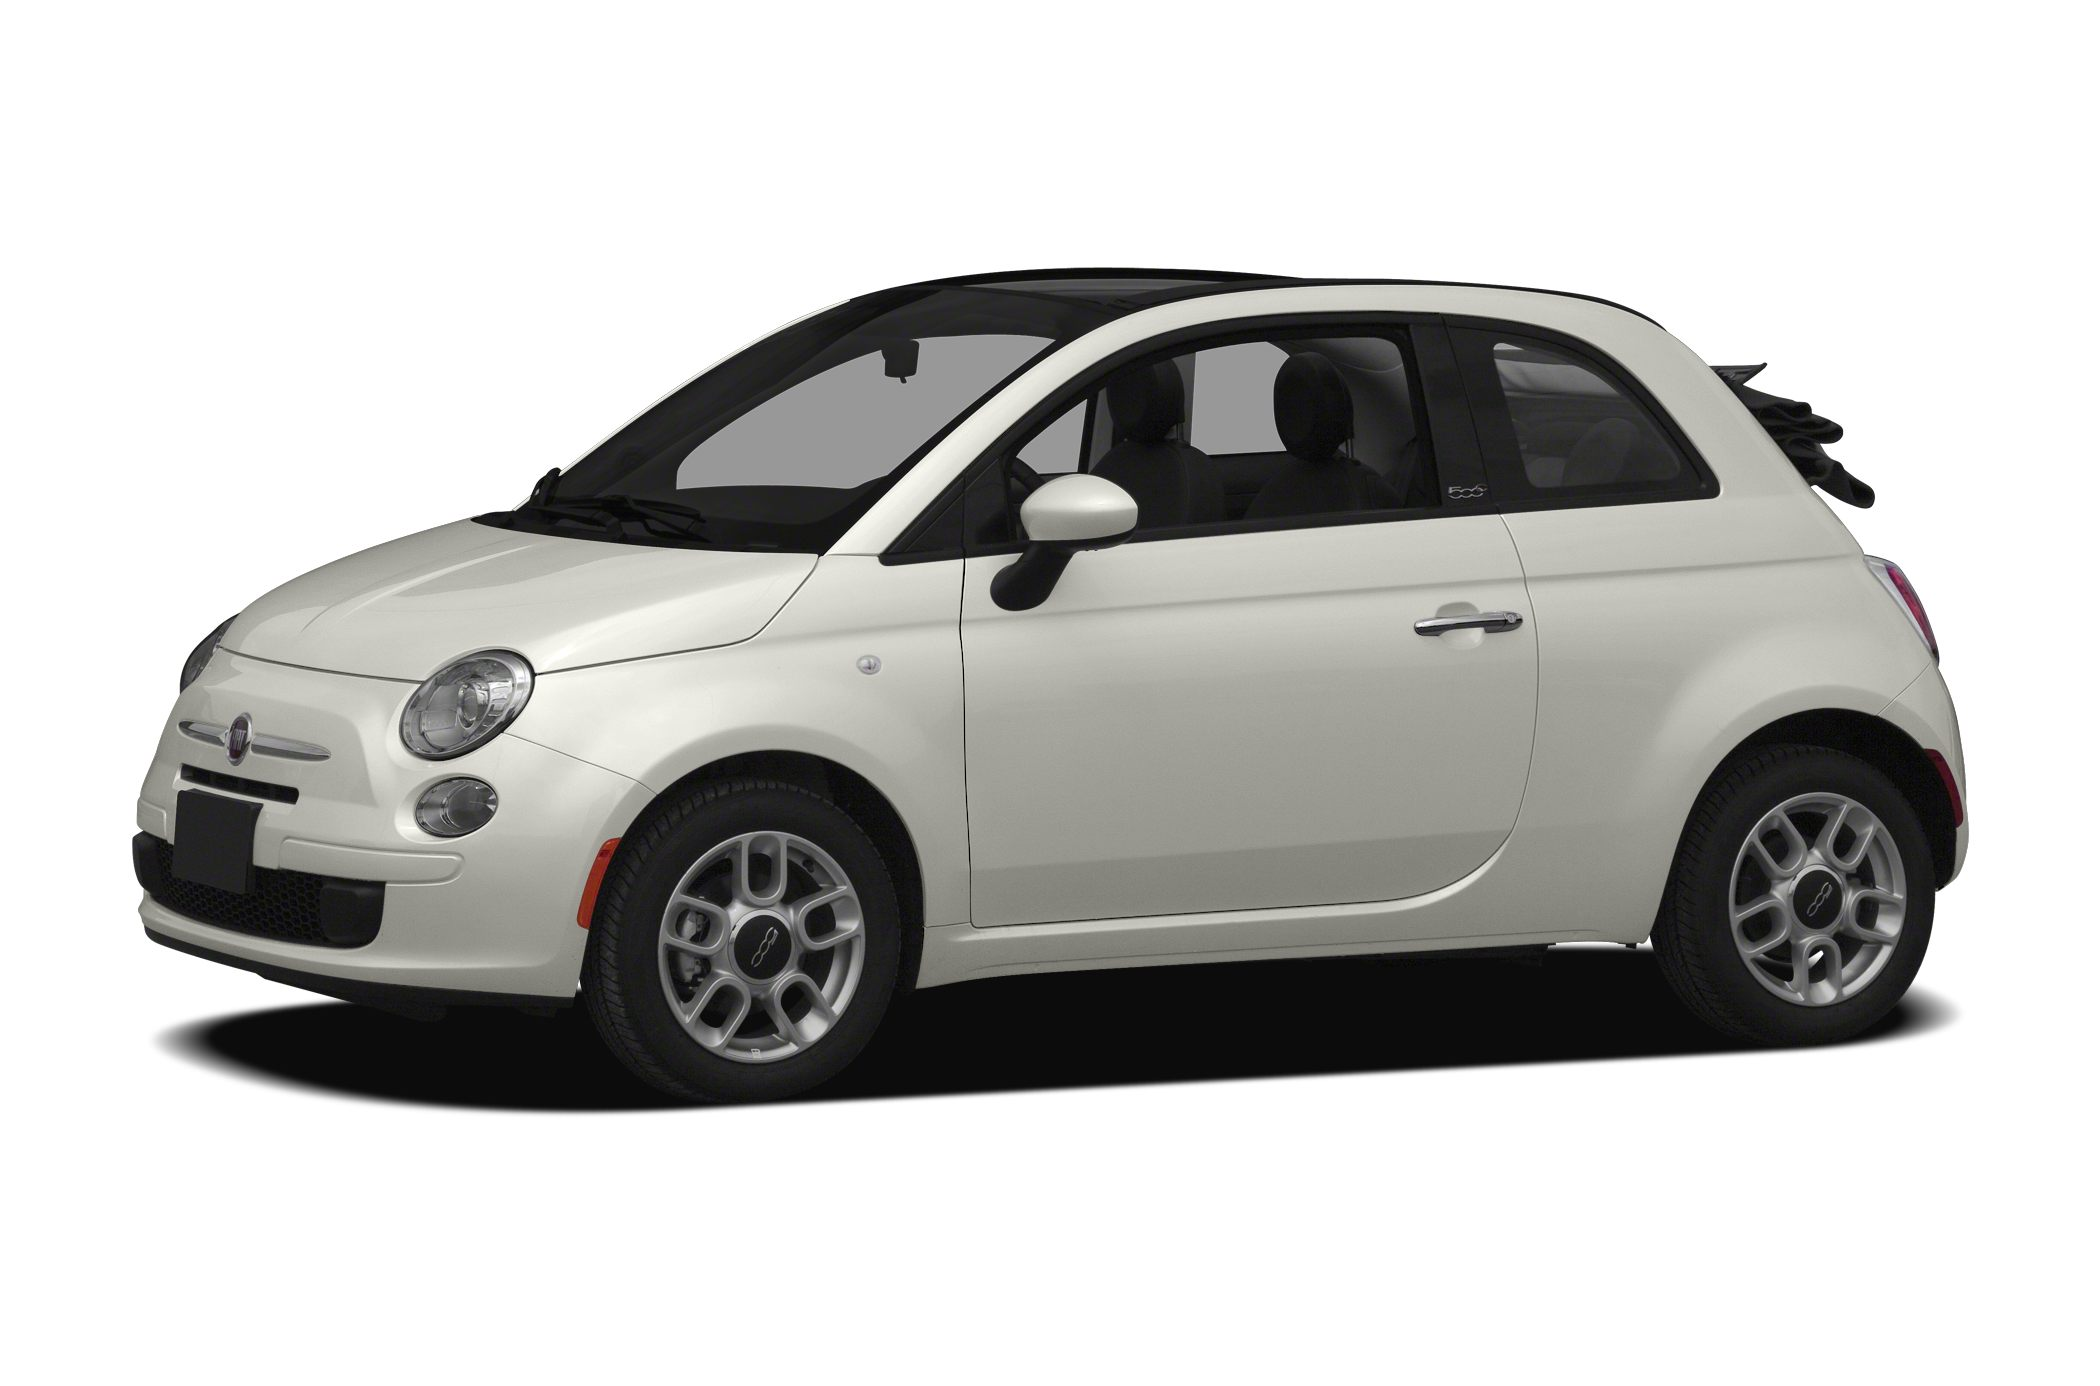 2012 Fiat 500C Lounge Convertible for sale in Greensboro for $0 with 12,969 miles